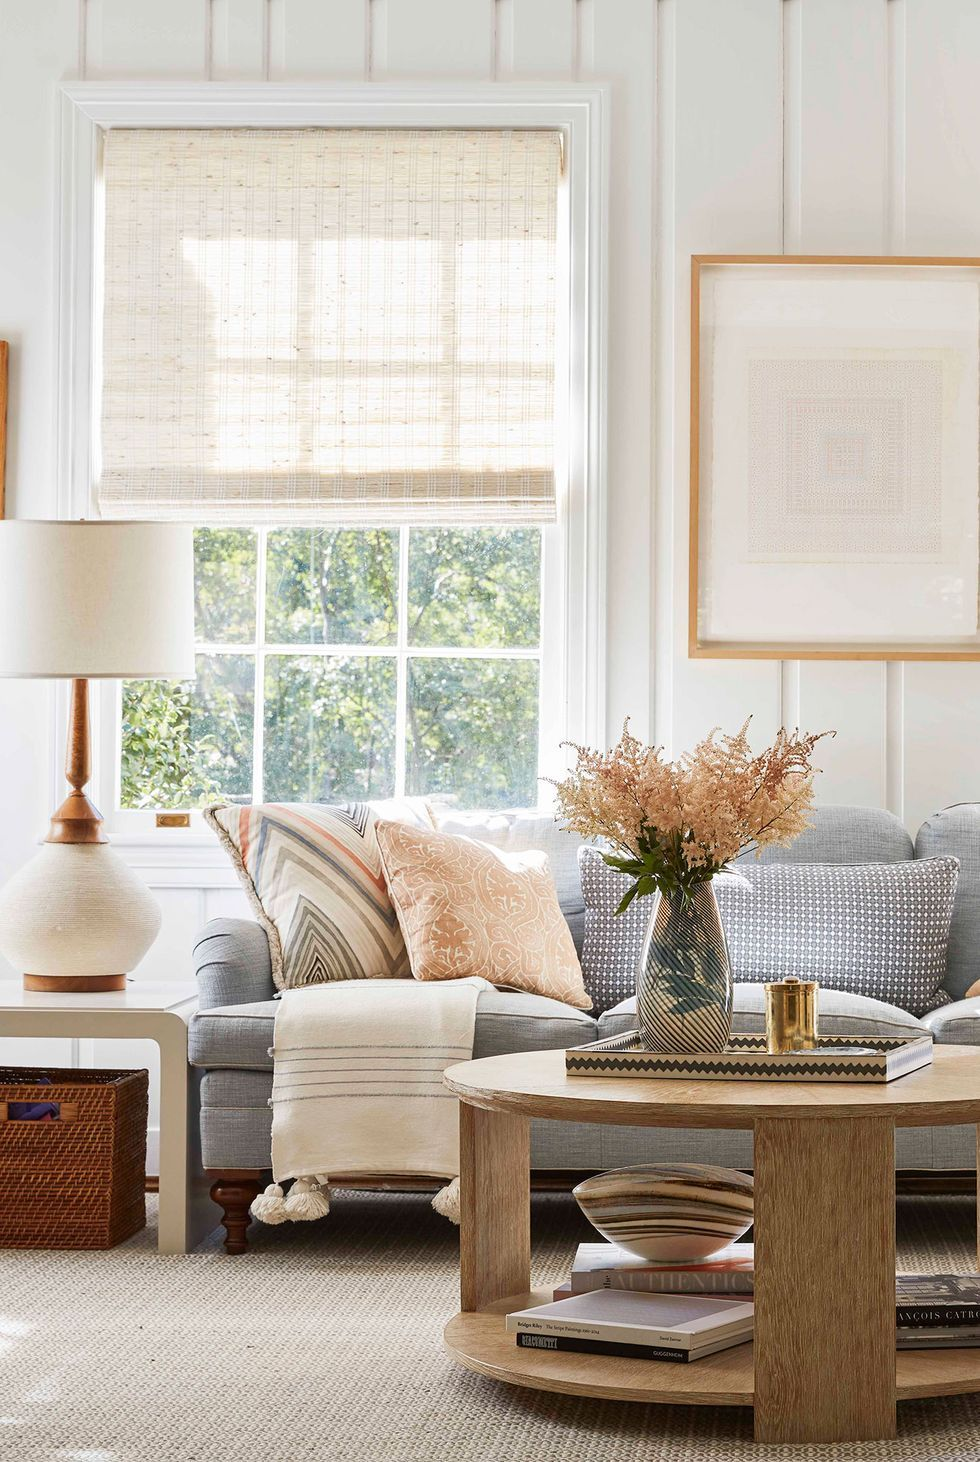 16 Best Small Living Room Ideas , How to Decorate a Small